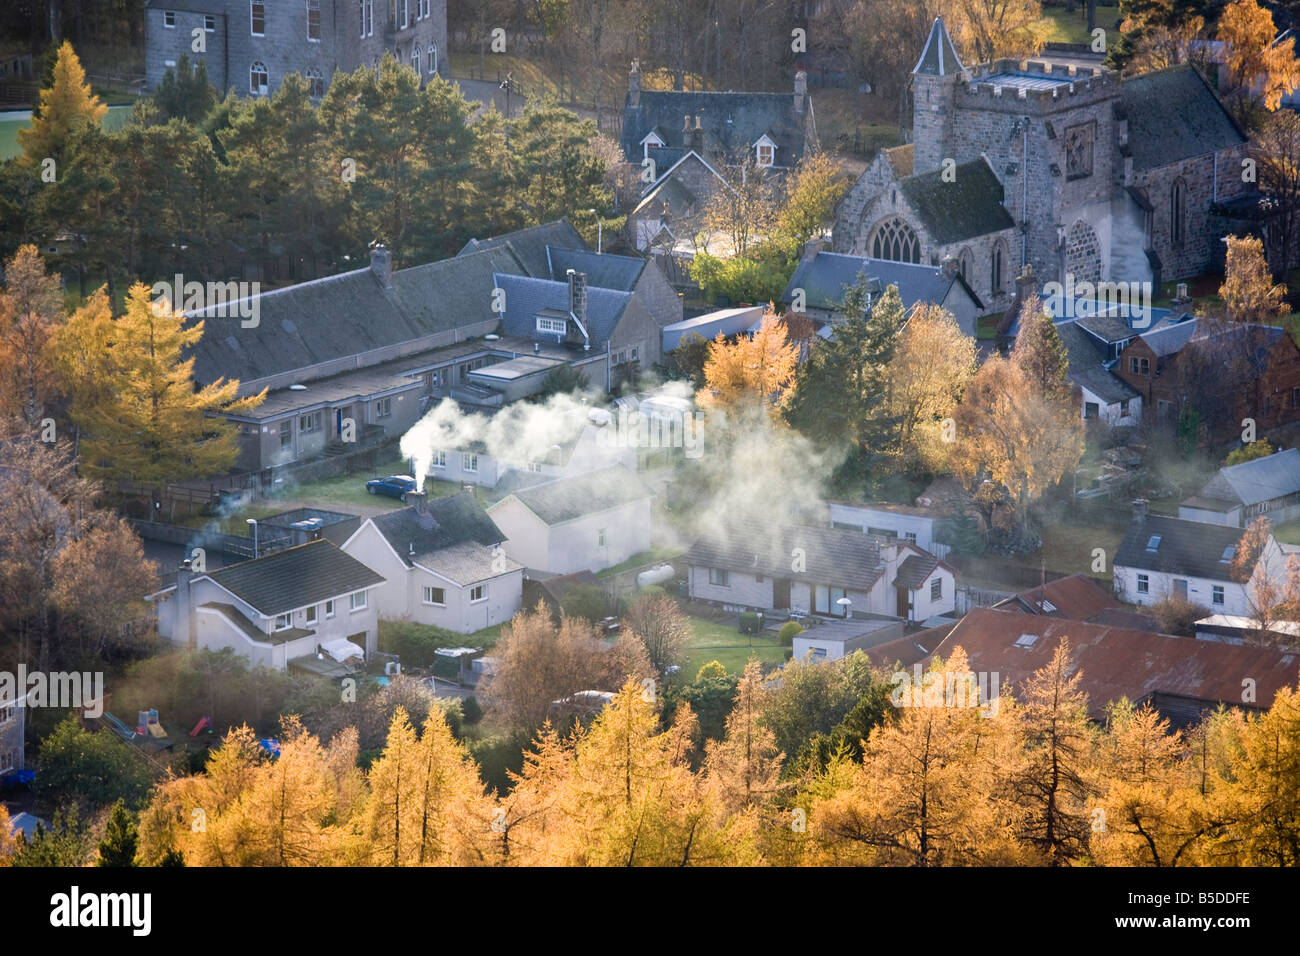 Smoking Chimneys, and roofs, with Larch trees in Autumn season Foliage, in the Scottish village to Braemar, Cairngorms - Stock Image